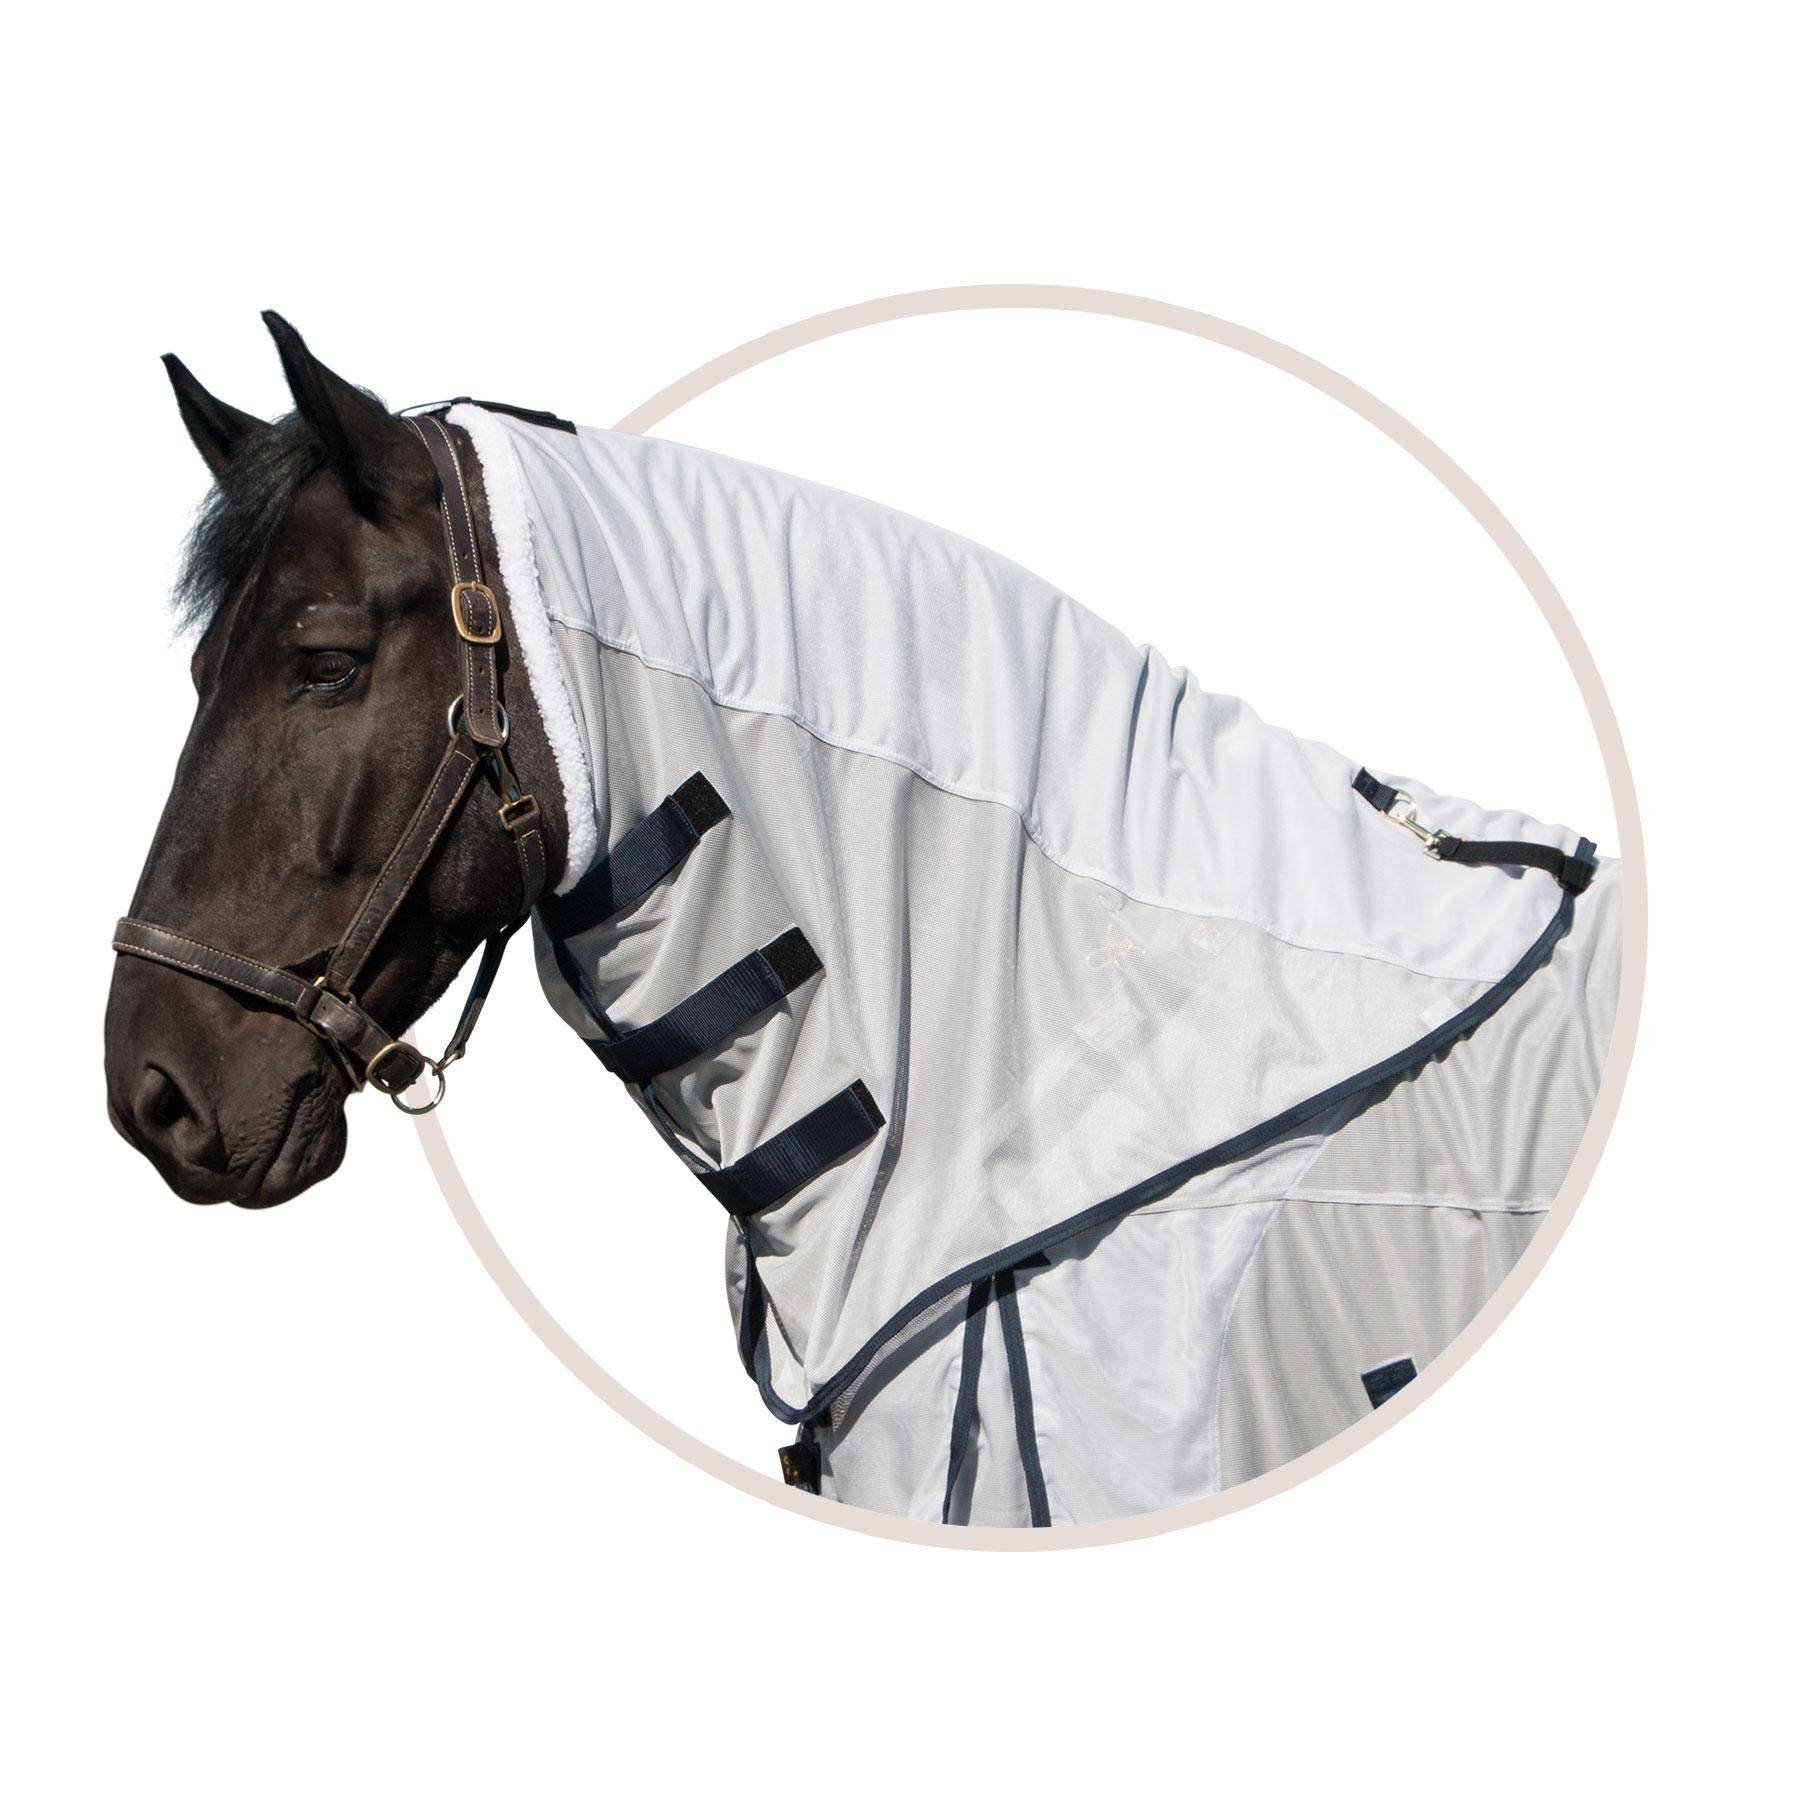 Big Fella Soft Mesh Fly Sheet Neck Cover